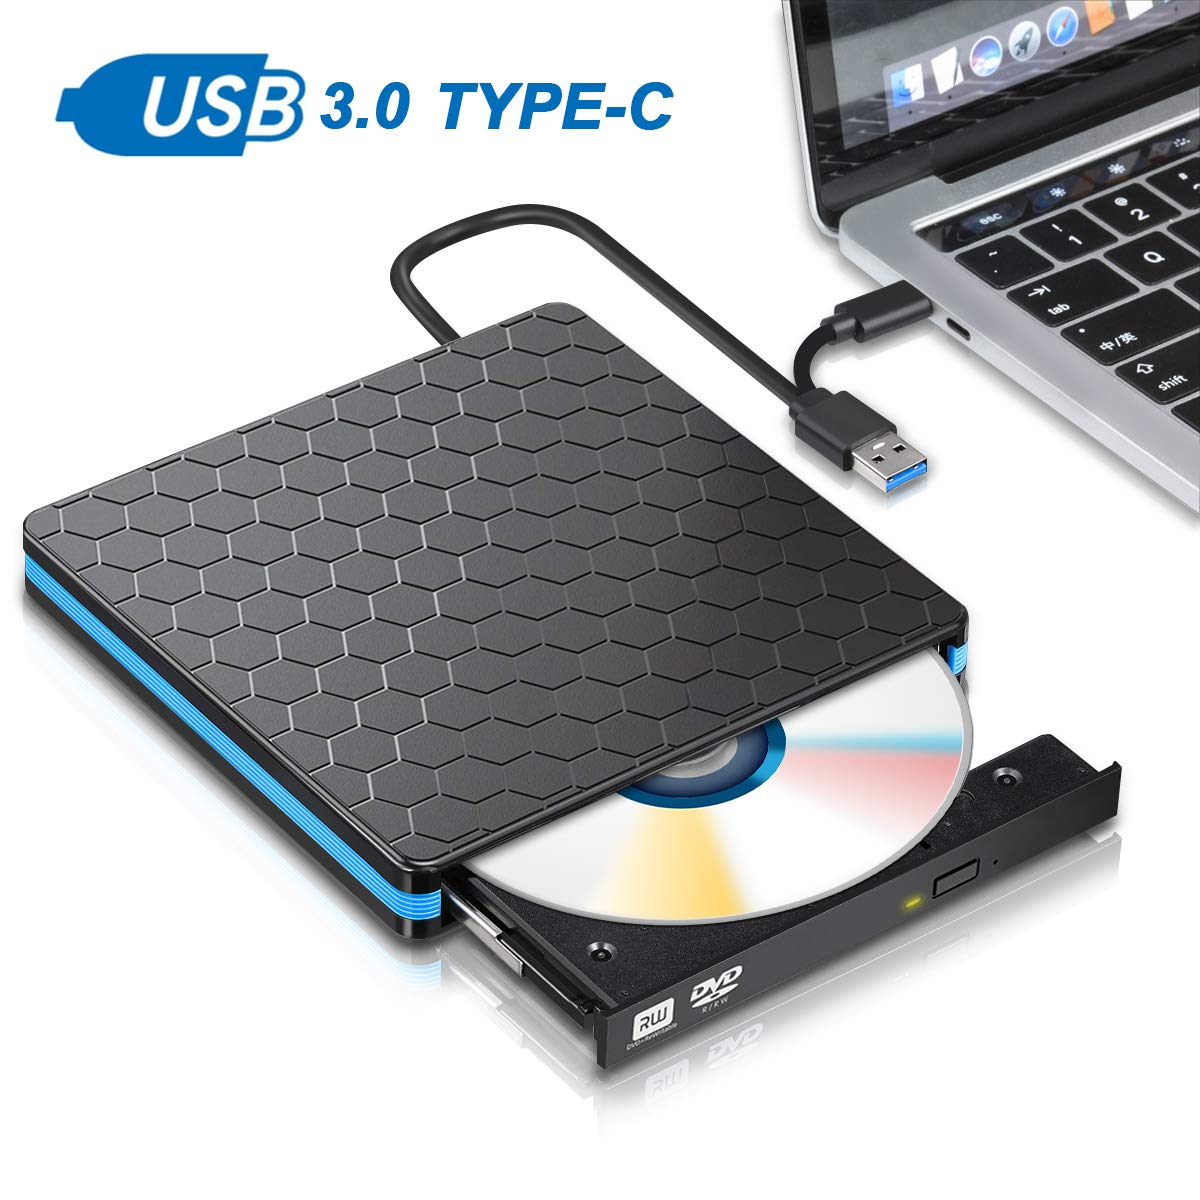 External DVD Drive, M WAY USB 3.0 Type C CD Drive, Dual Port DVD-RW Player, Portable Optical Burner Writer Rewriter, High Speed Data Transfer for Laptop Notebook Desktop PC MAC OS Windows 7/8/10 by M WAY